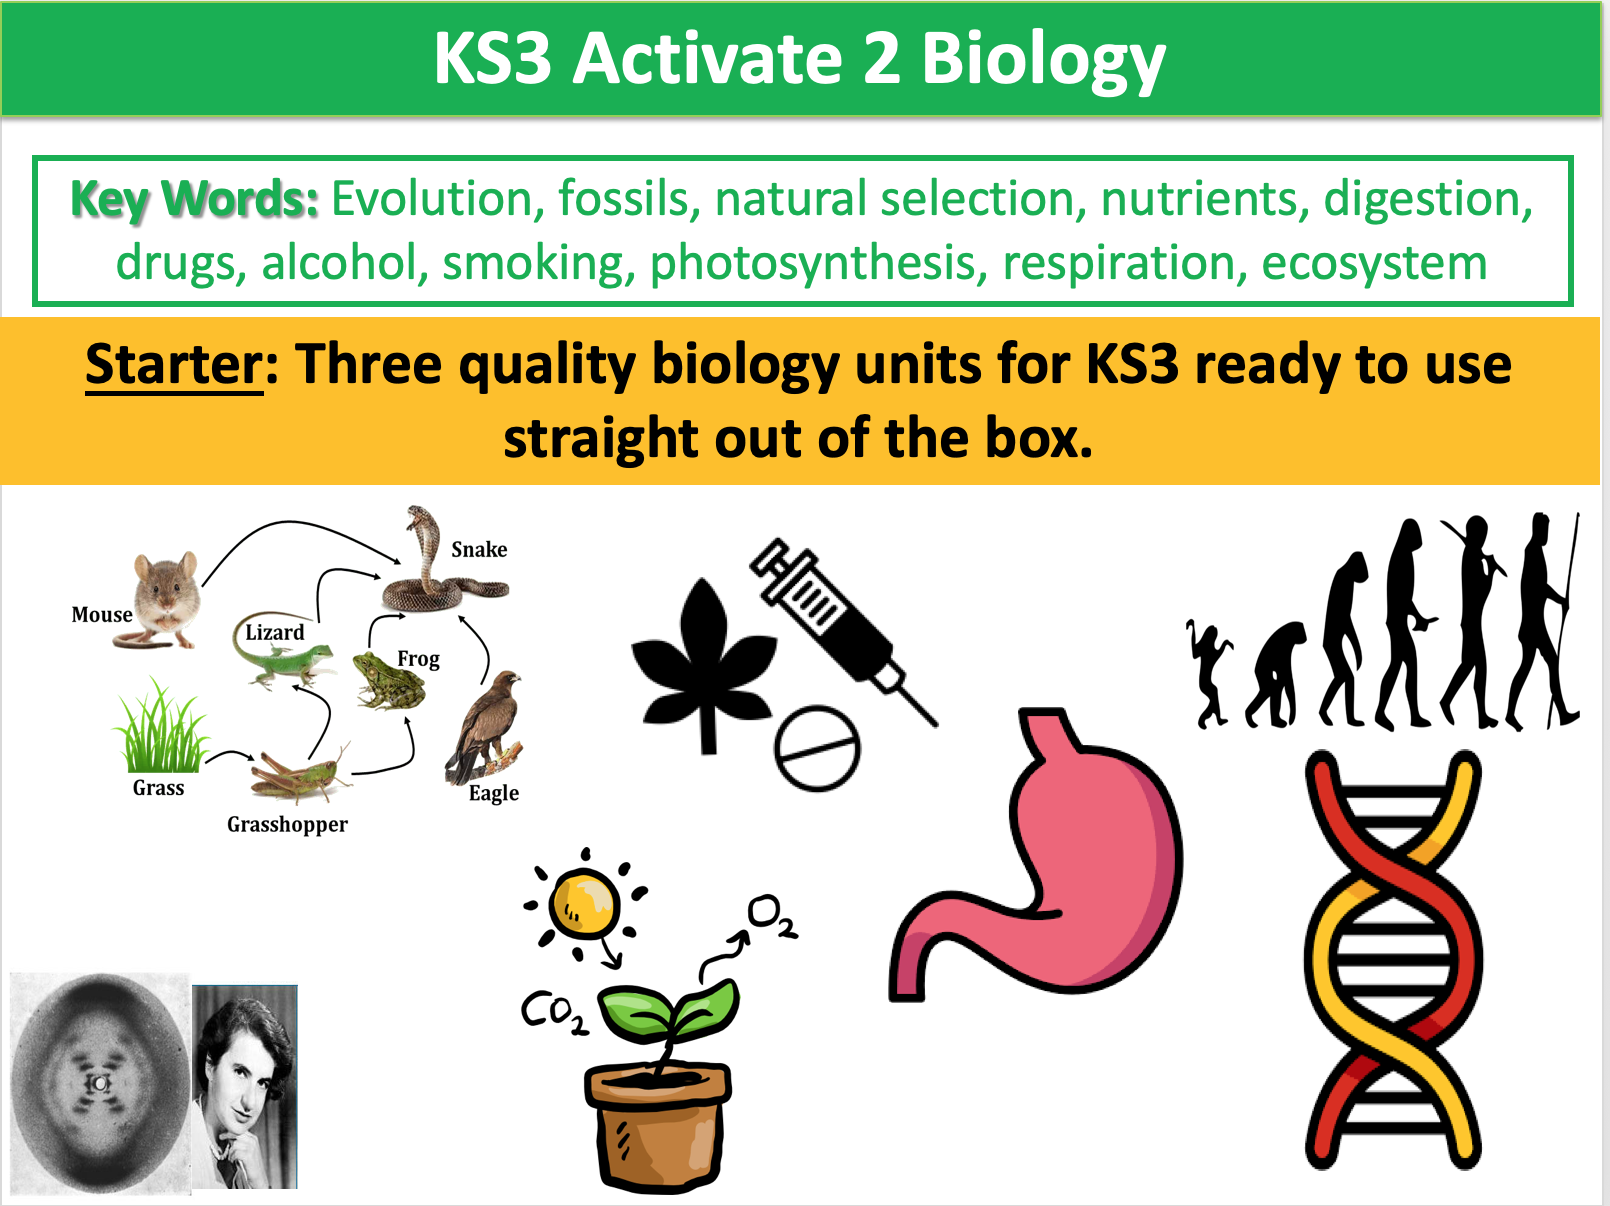 KS3 Activate 2 Biology